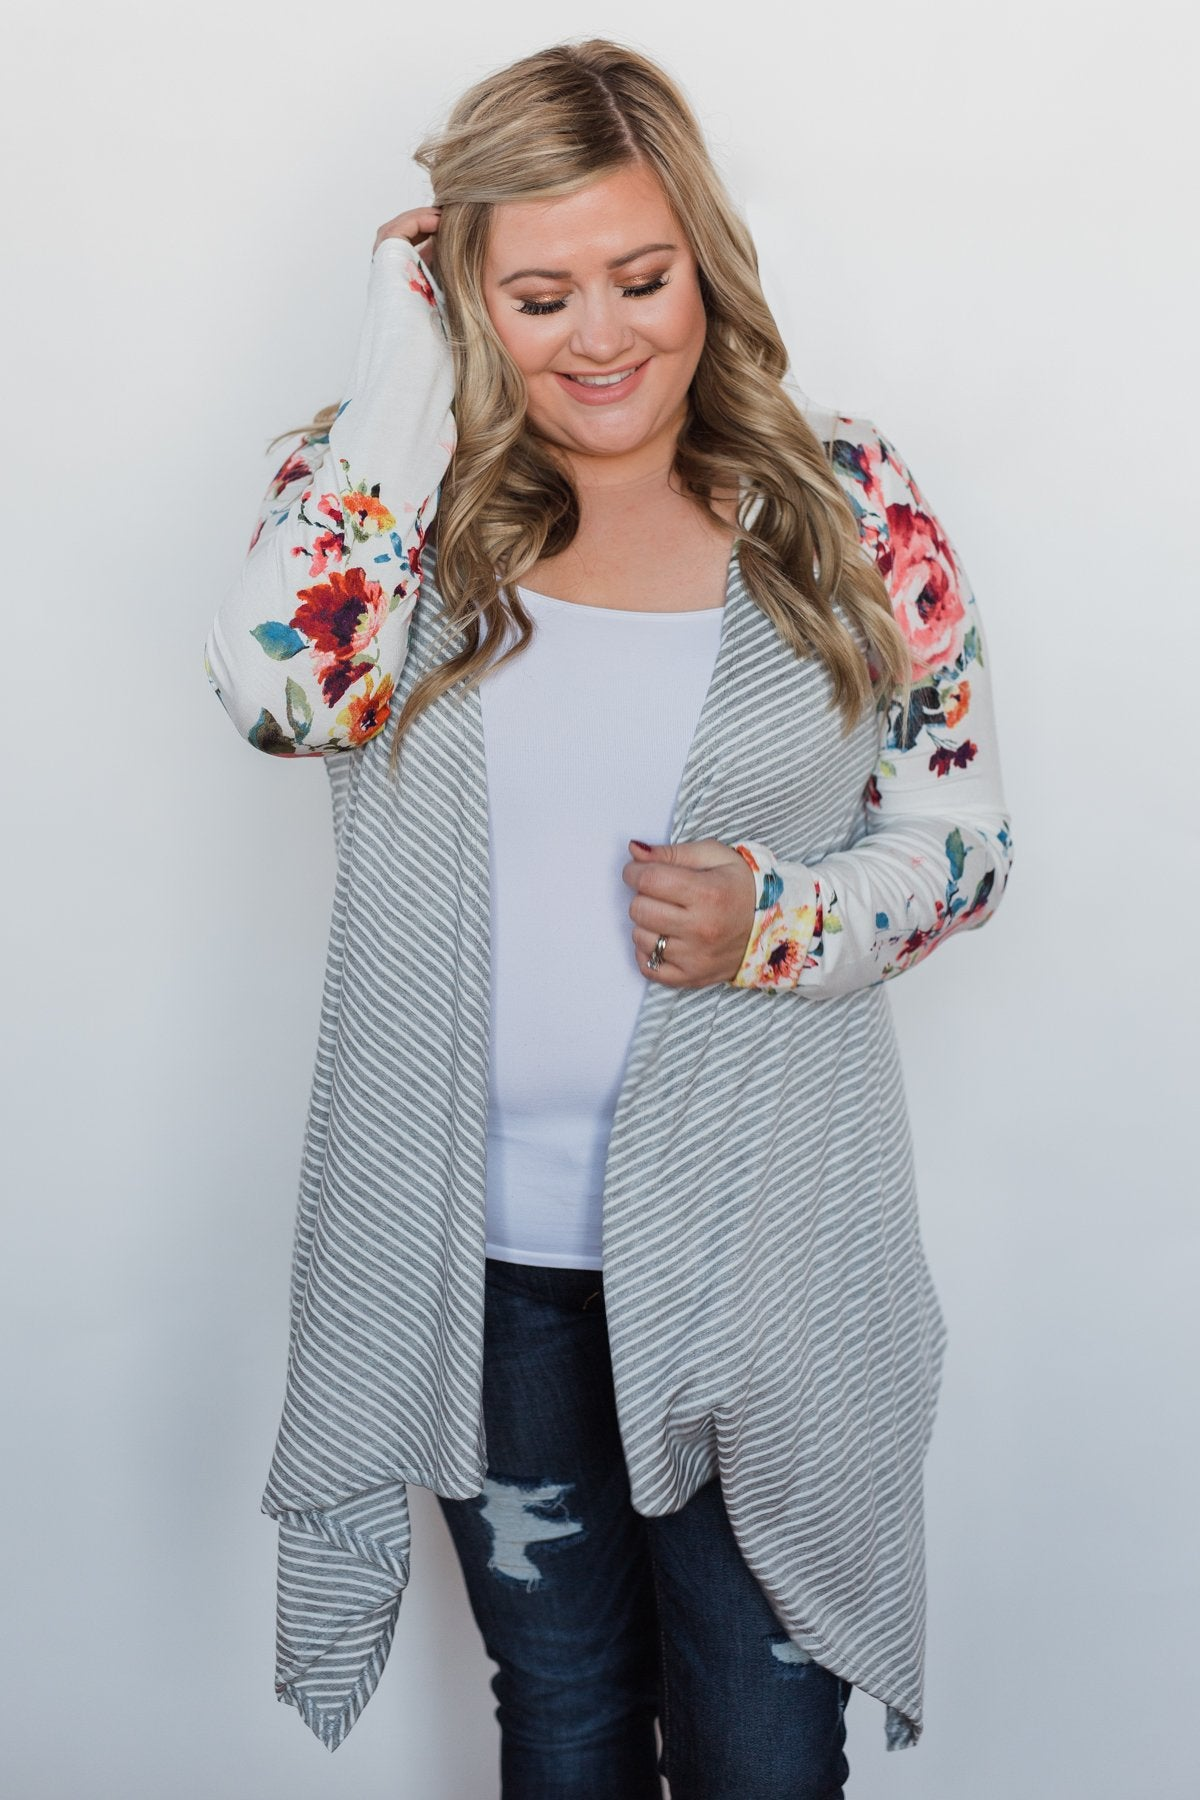 Easy Breeze Floral & Striped Cardigan- Ivory & Grey